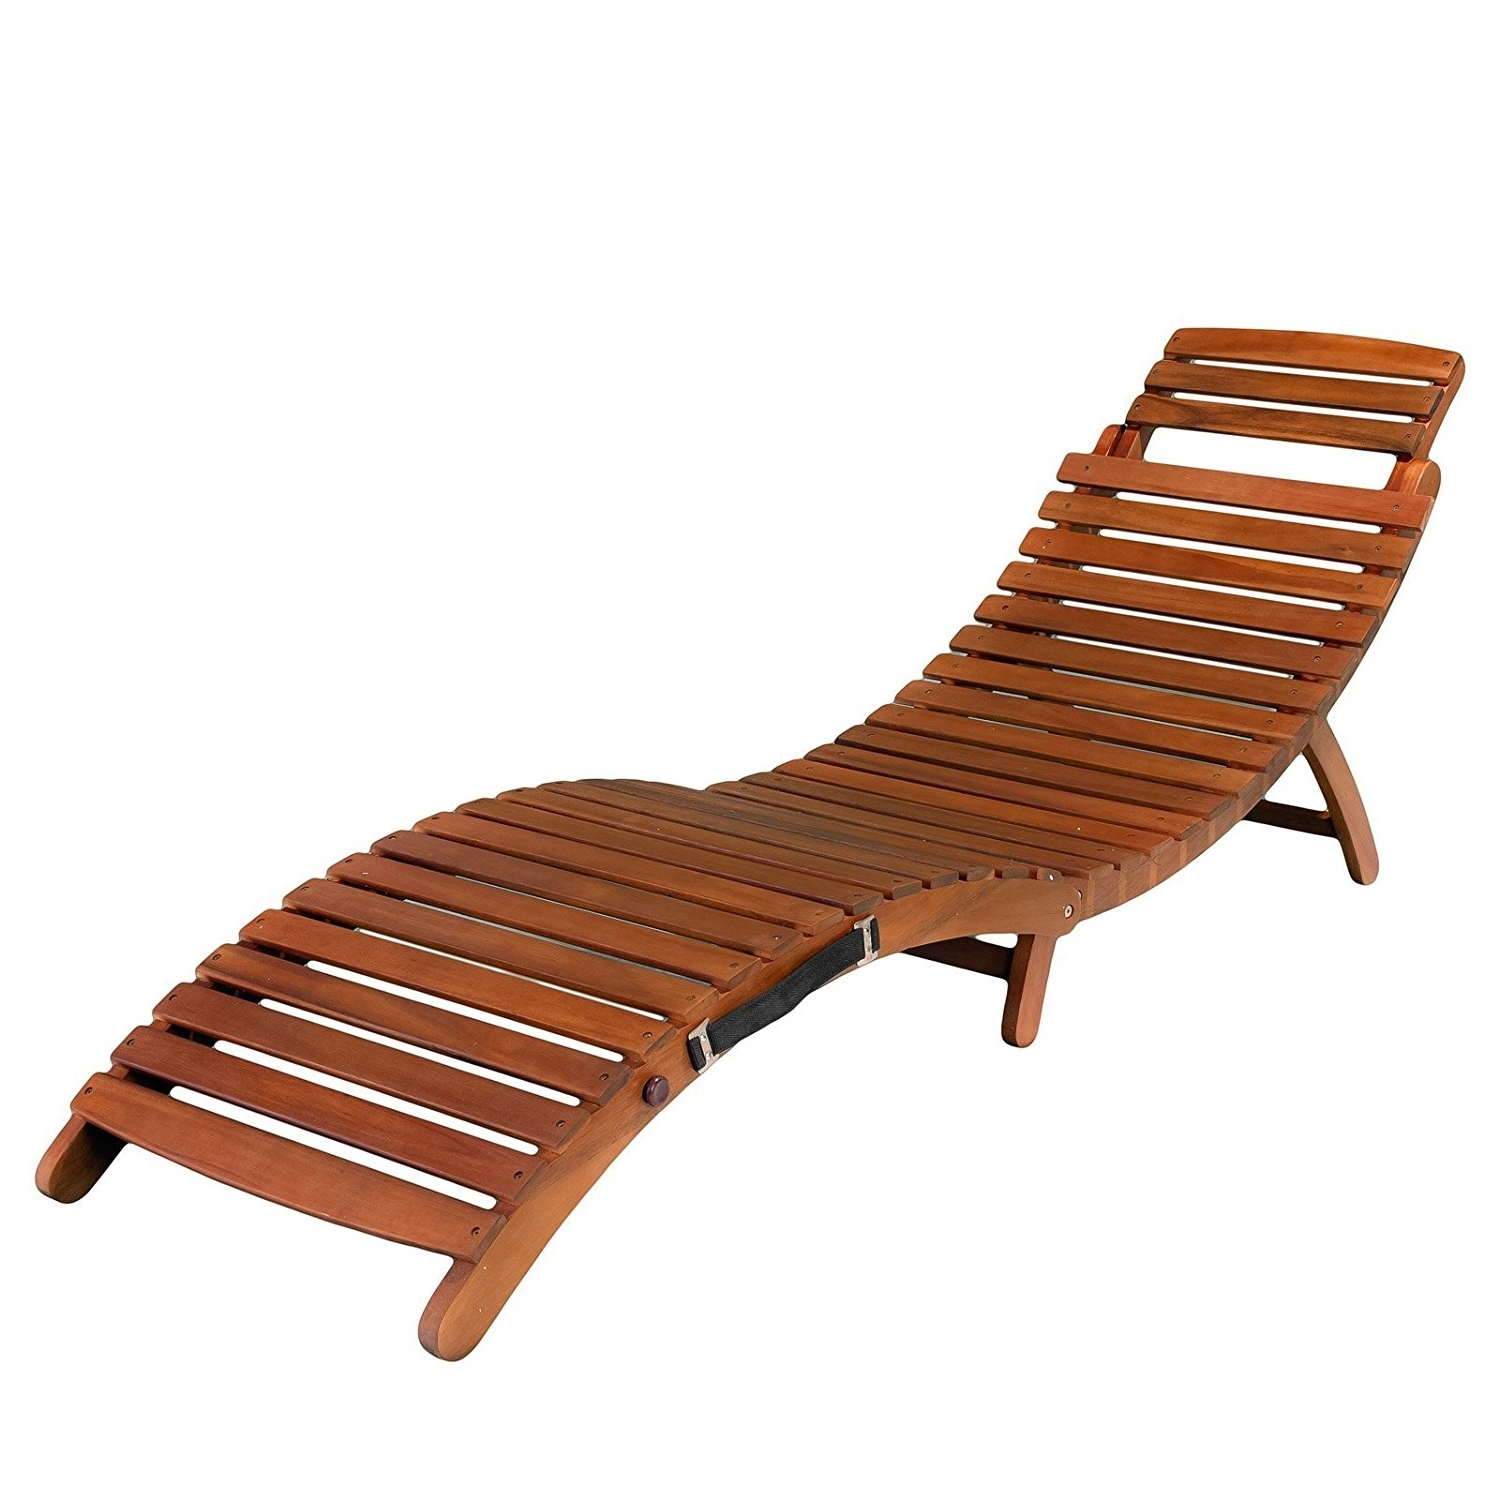 Latest Amazon: Lahaina Outdoor Chaise Lounge: Garden & Outdoor Pertaining To Aluminum Chaise Lounge Chairs (View 10 of 15)